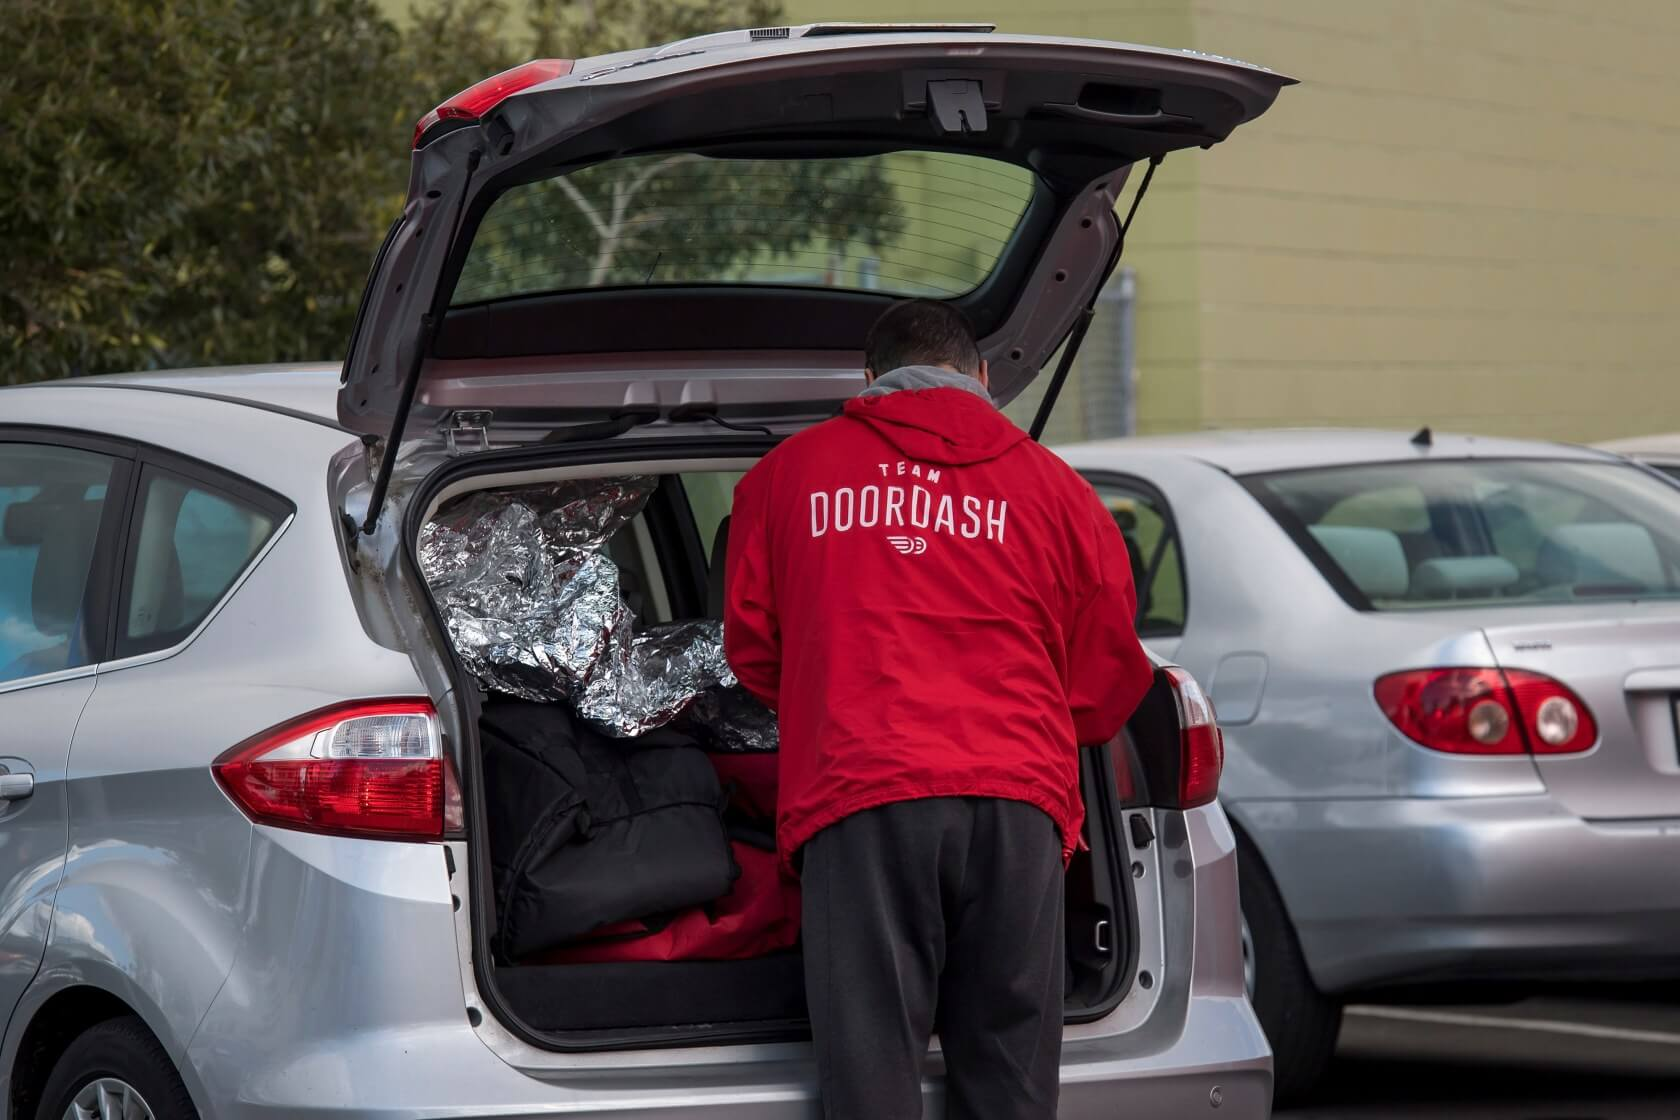 DoorDash begins offering convenience store delivery